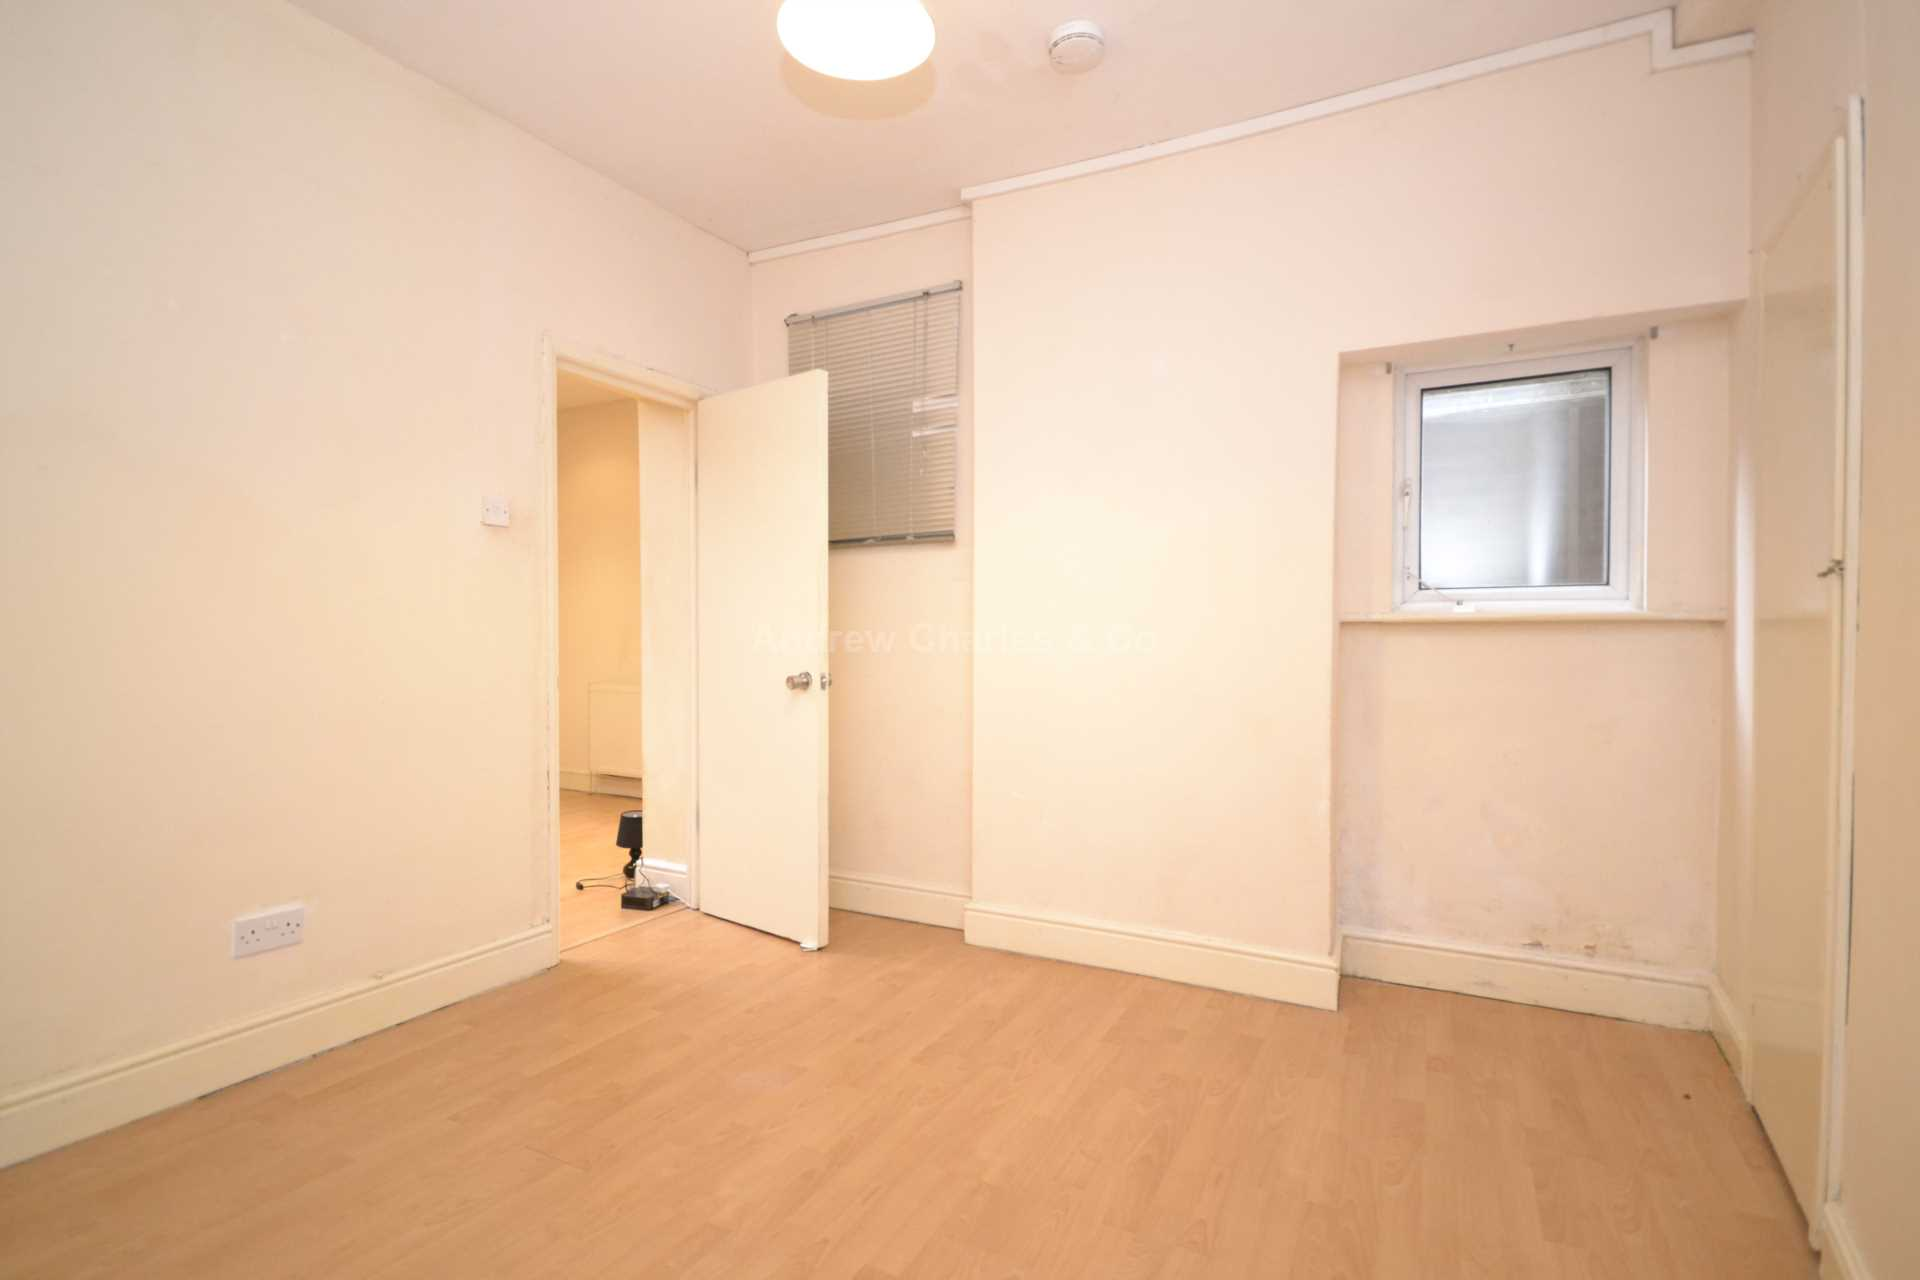 House To Rent In Holloway L2L1393-1095